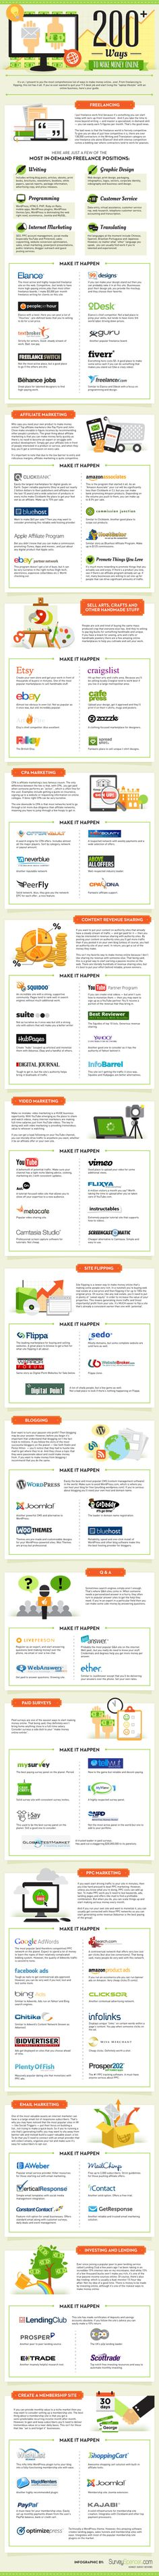 200 ways to make money online #infografia #infographic #internet